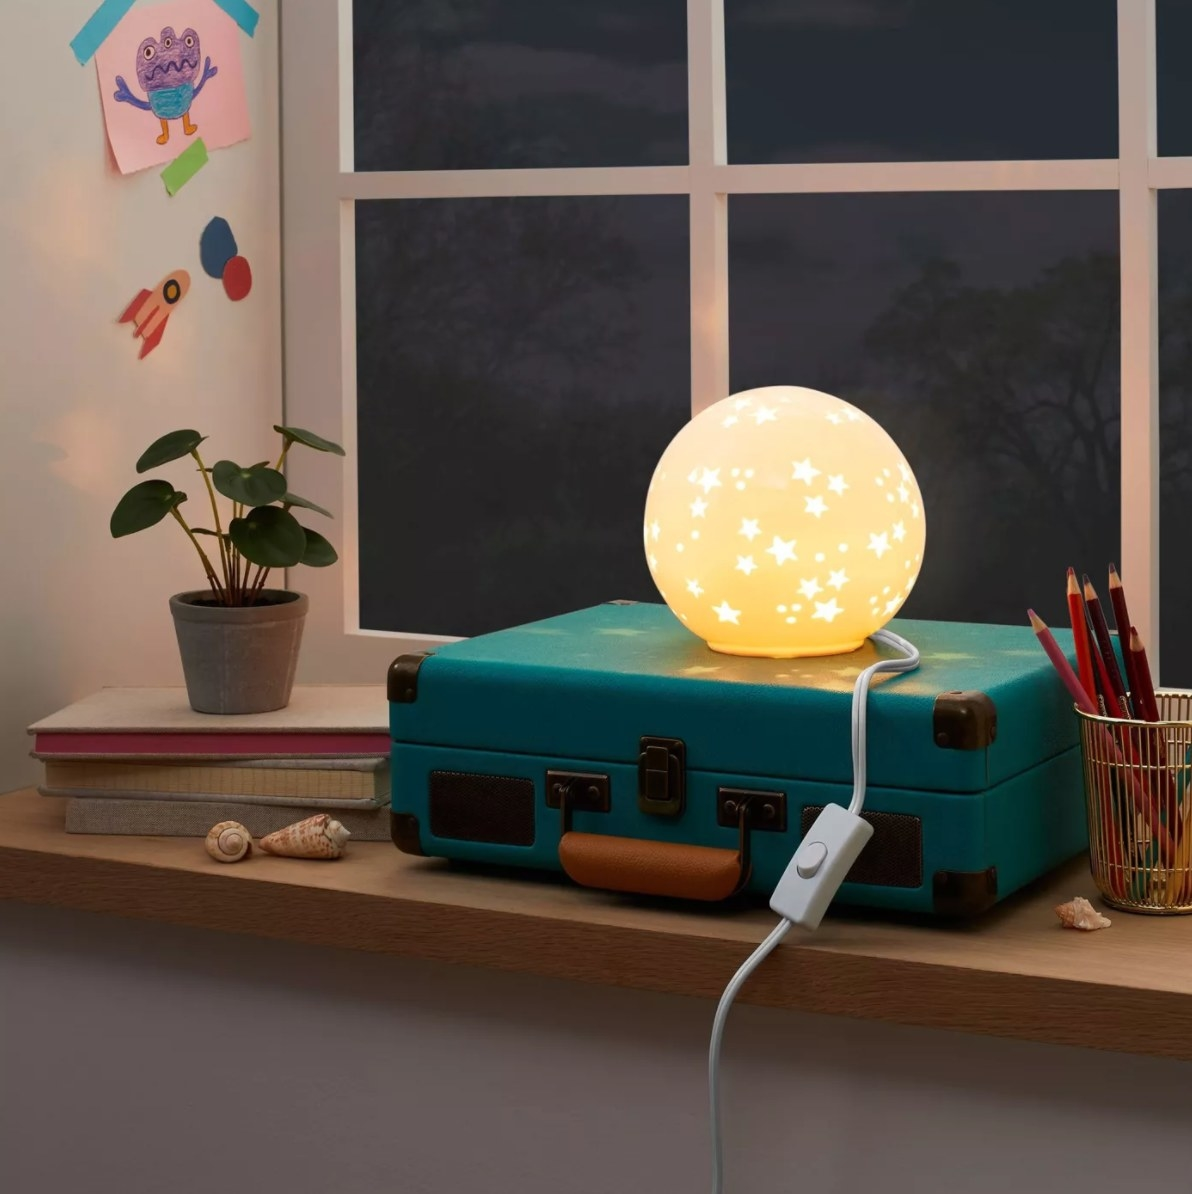 The starry globe nightlight glowing in a dark room next to a house plant